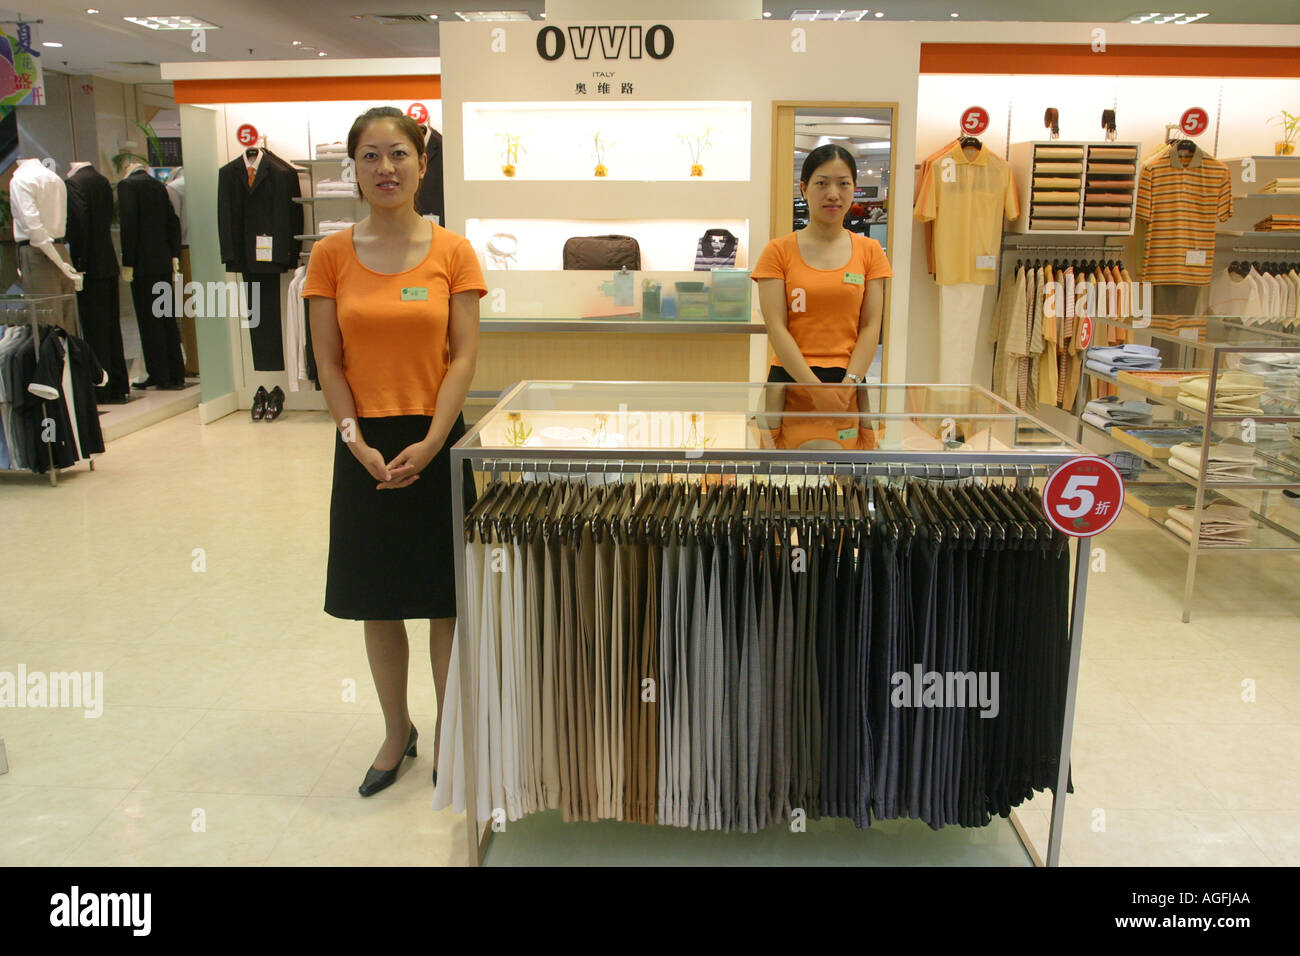 shanghai s assistant at a clothes shop stock photo shanghai s assistant at a clothes shop